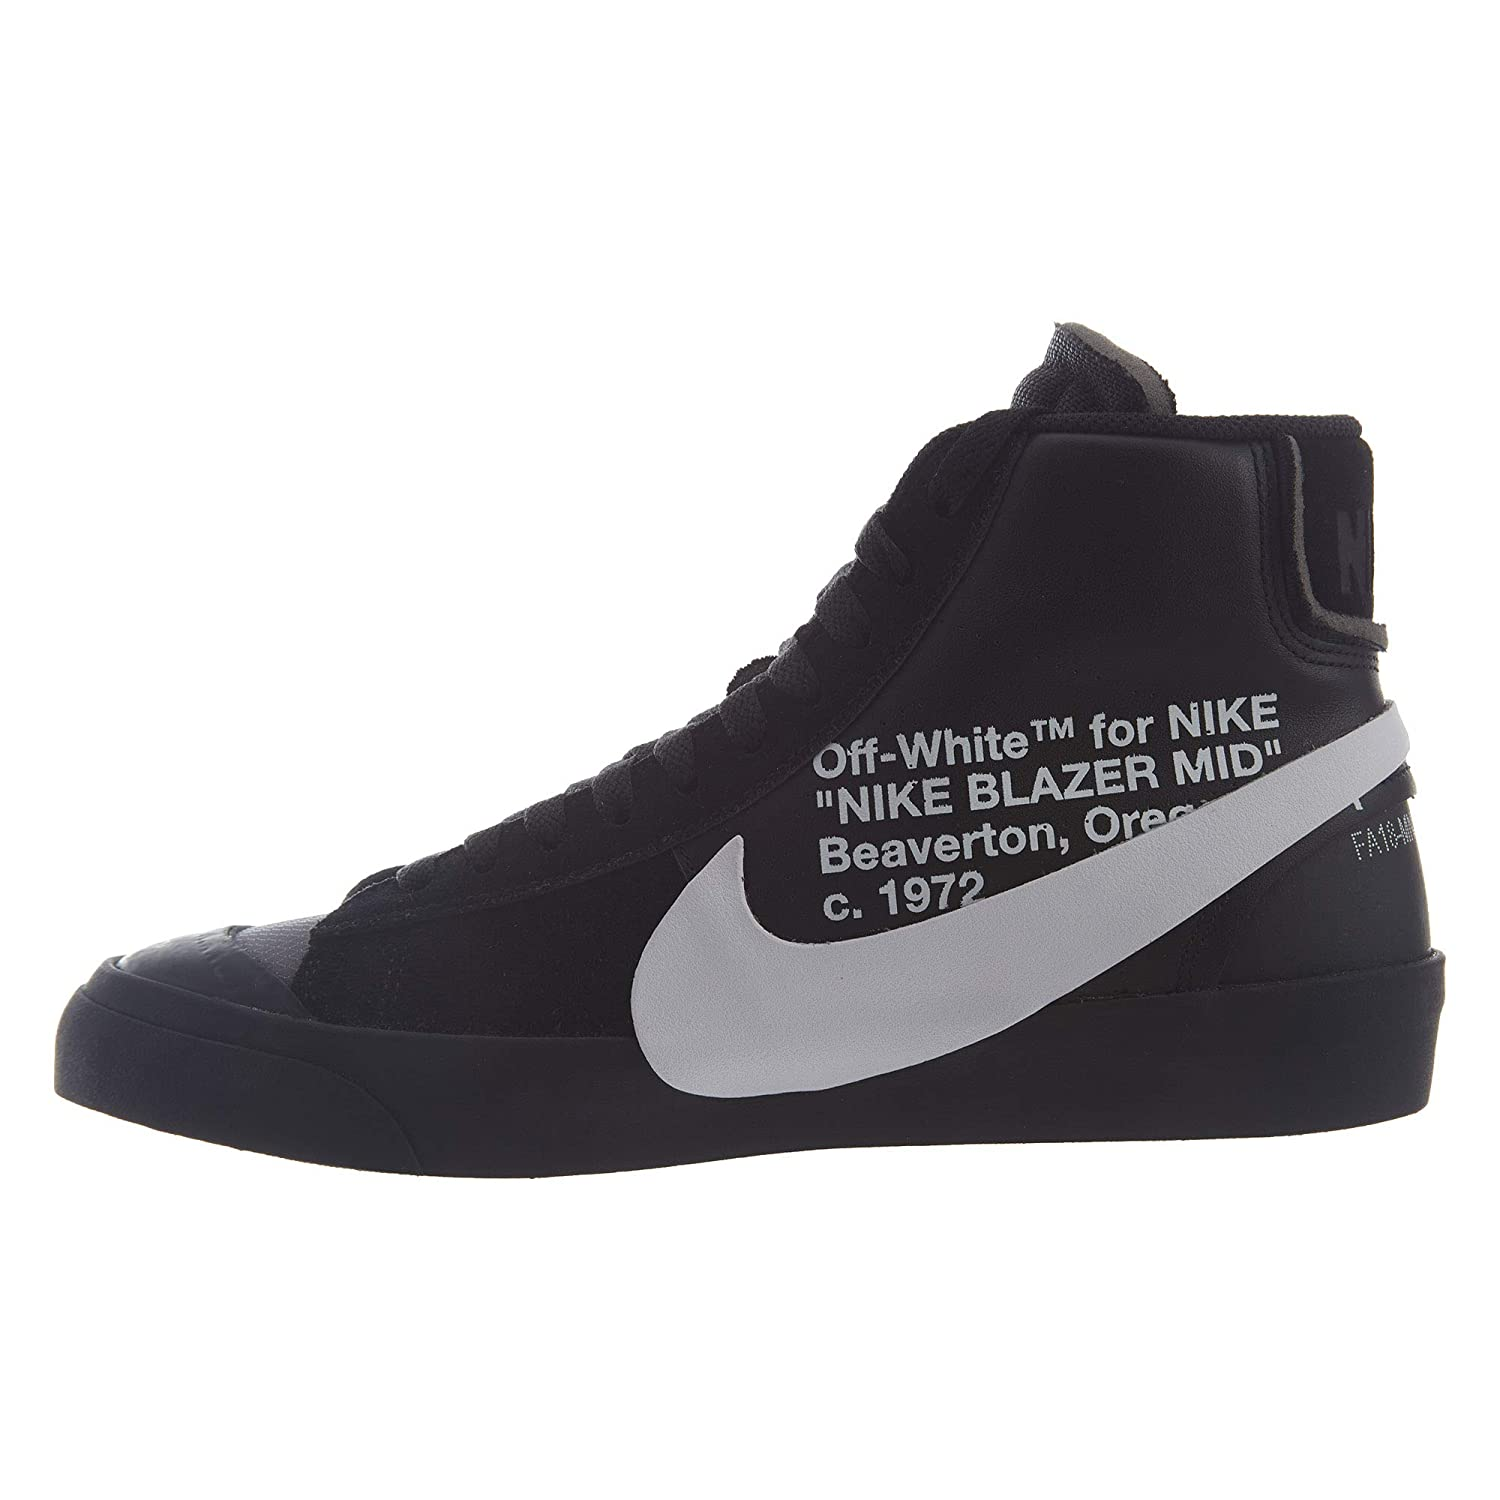 8a169745 ... release date. nikeu2060 launch cb948 d7b52; france amazon nike mens the  10 blazer mid grim reaper black white cone black leather shoes